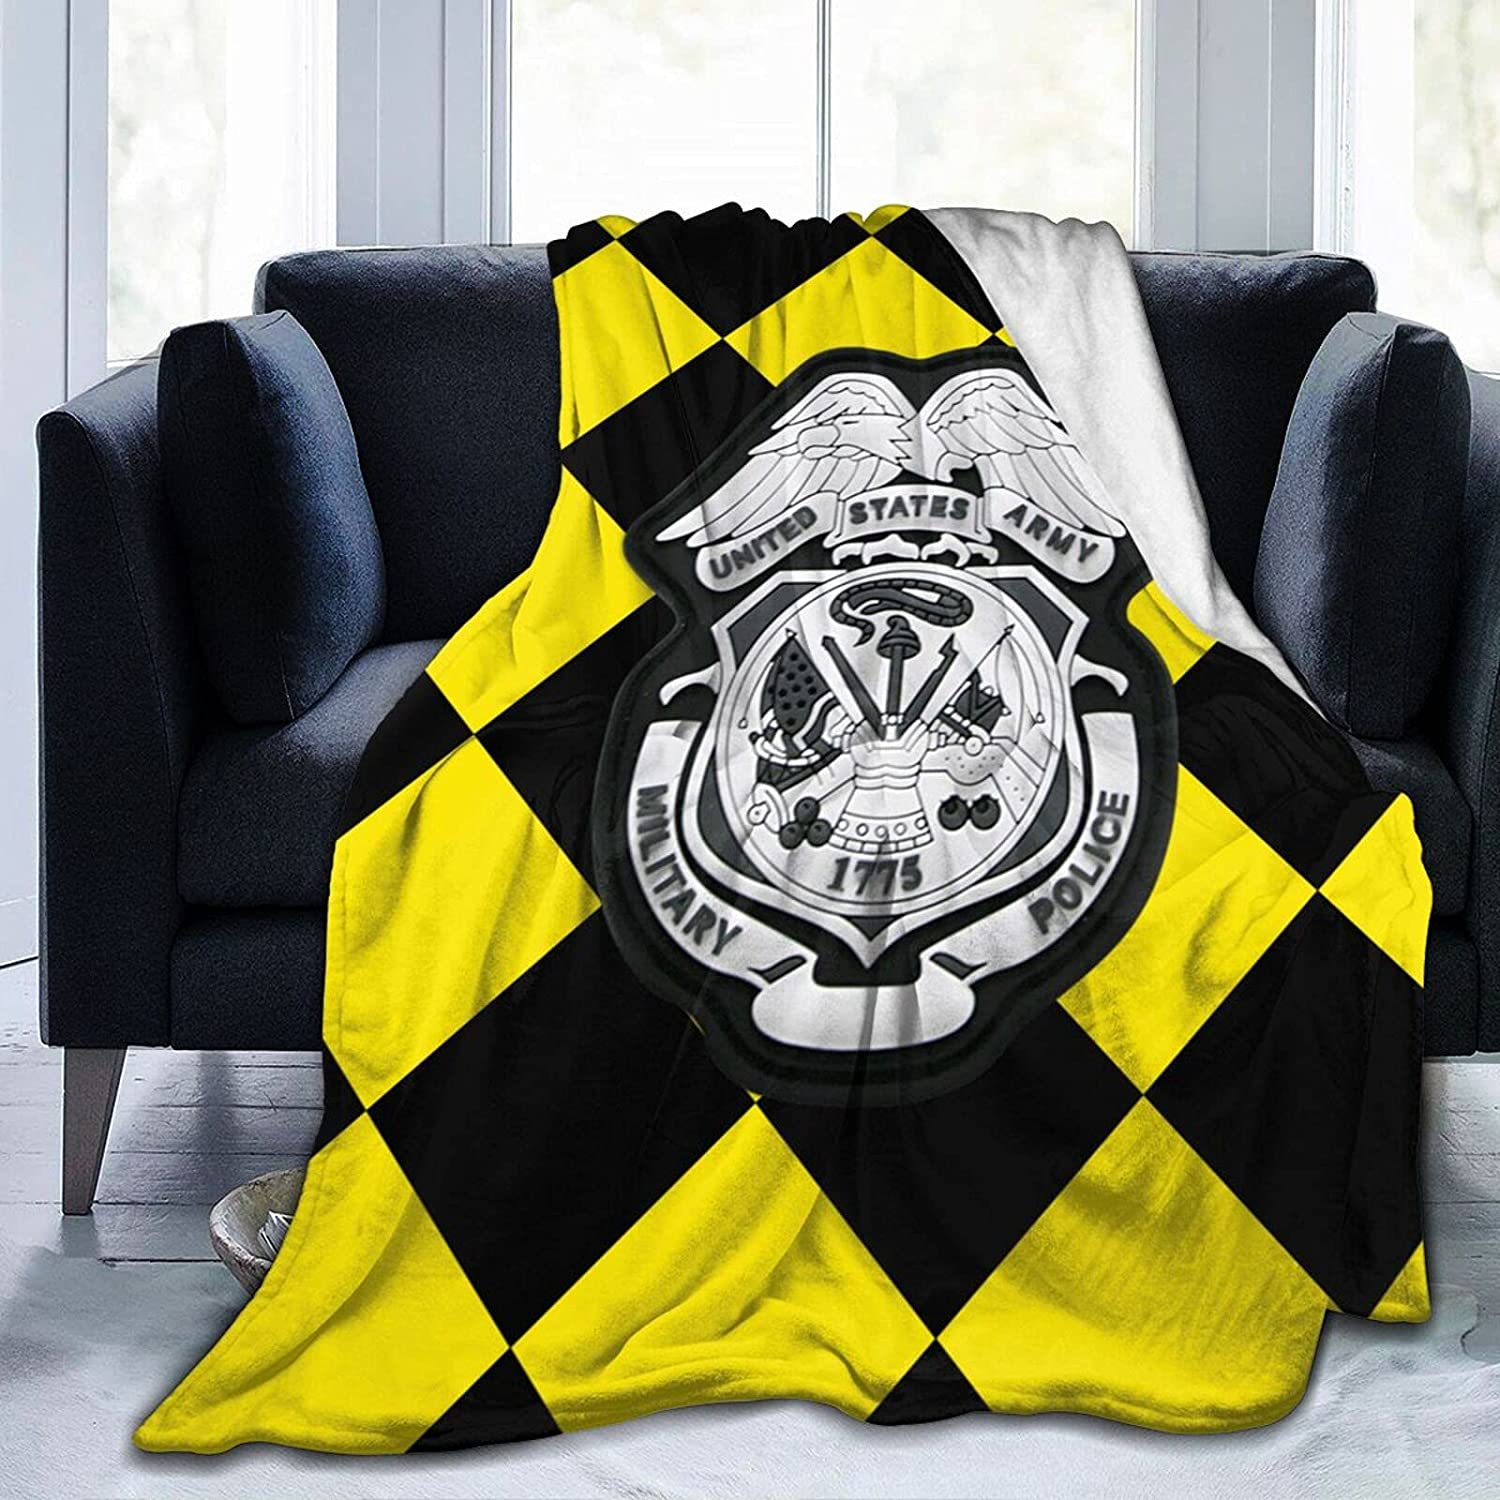 Special Campaign Bombing new work Us Army Military Police Badge Milit Printed Flannel with Blanket